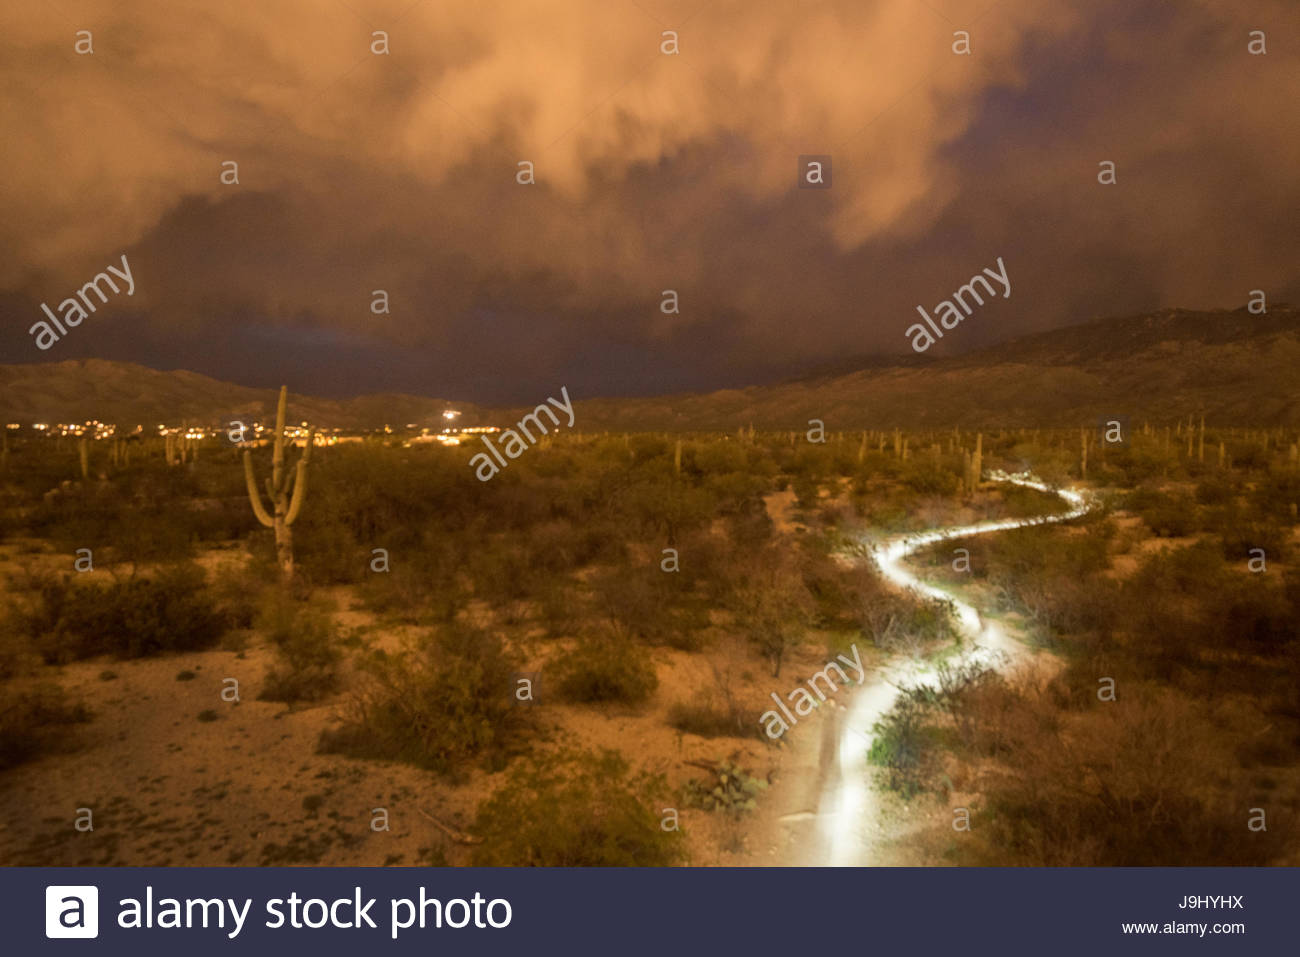 The headlamp of a hiker on a trail in Saguaro National Park during approaching storm clouds lit up by Tucson lights. - Stock Image